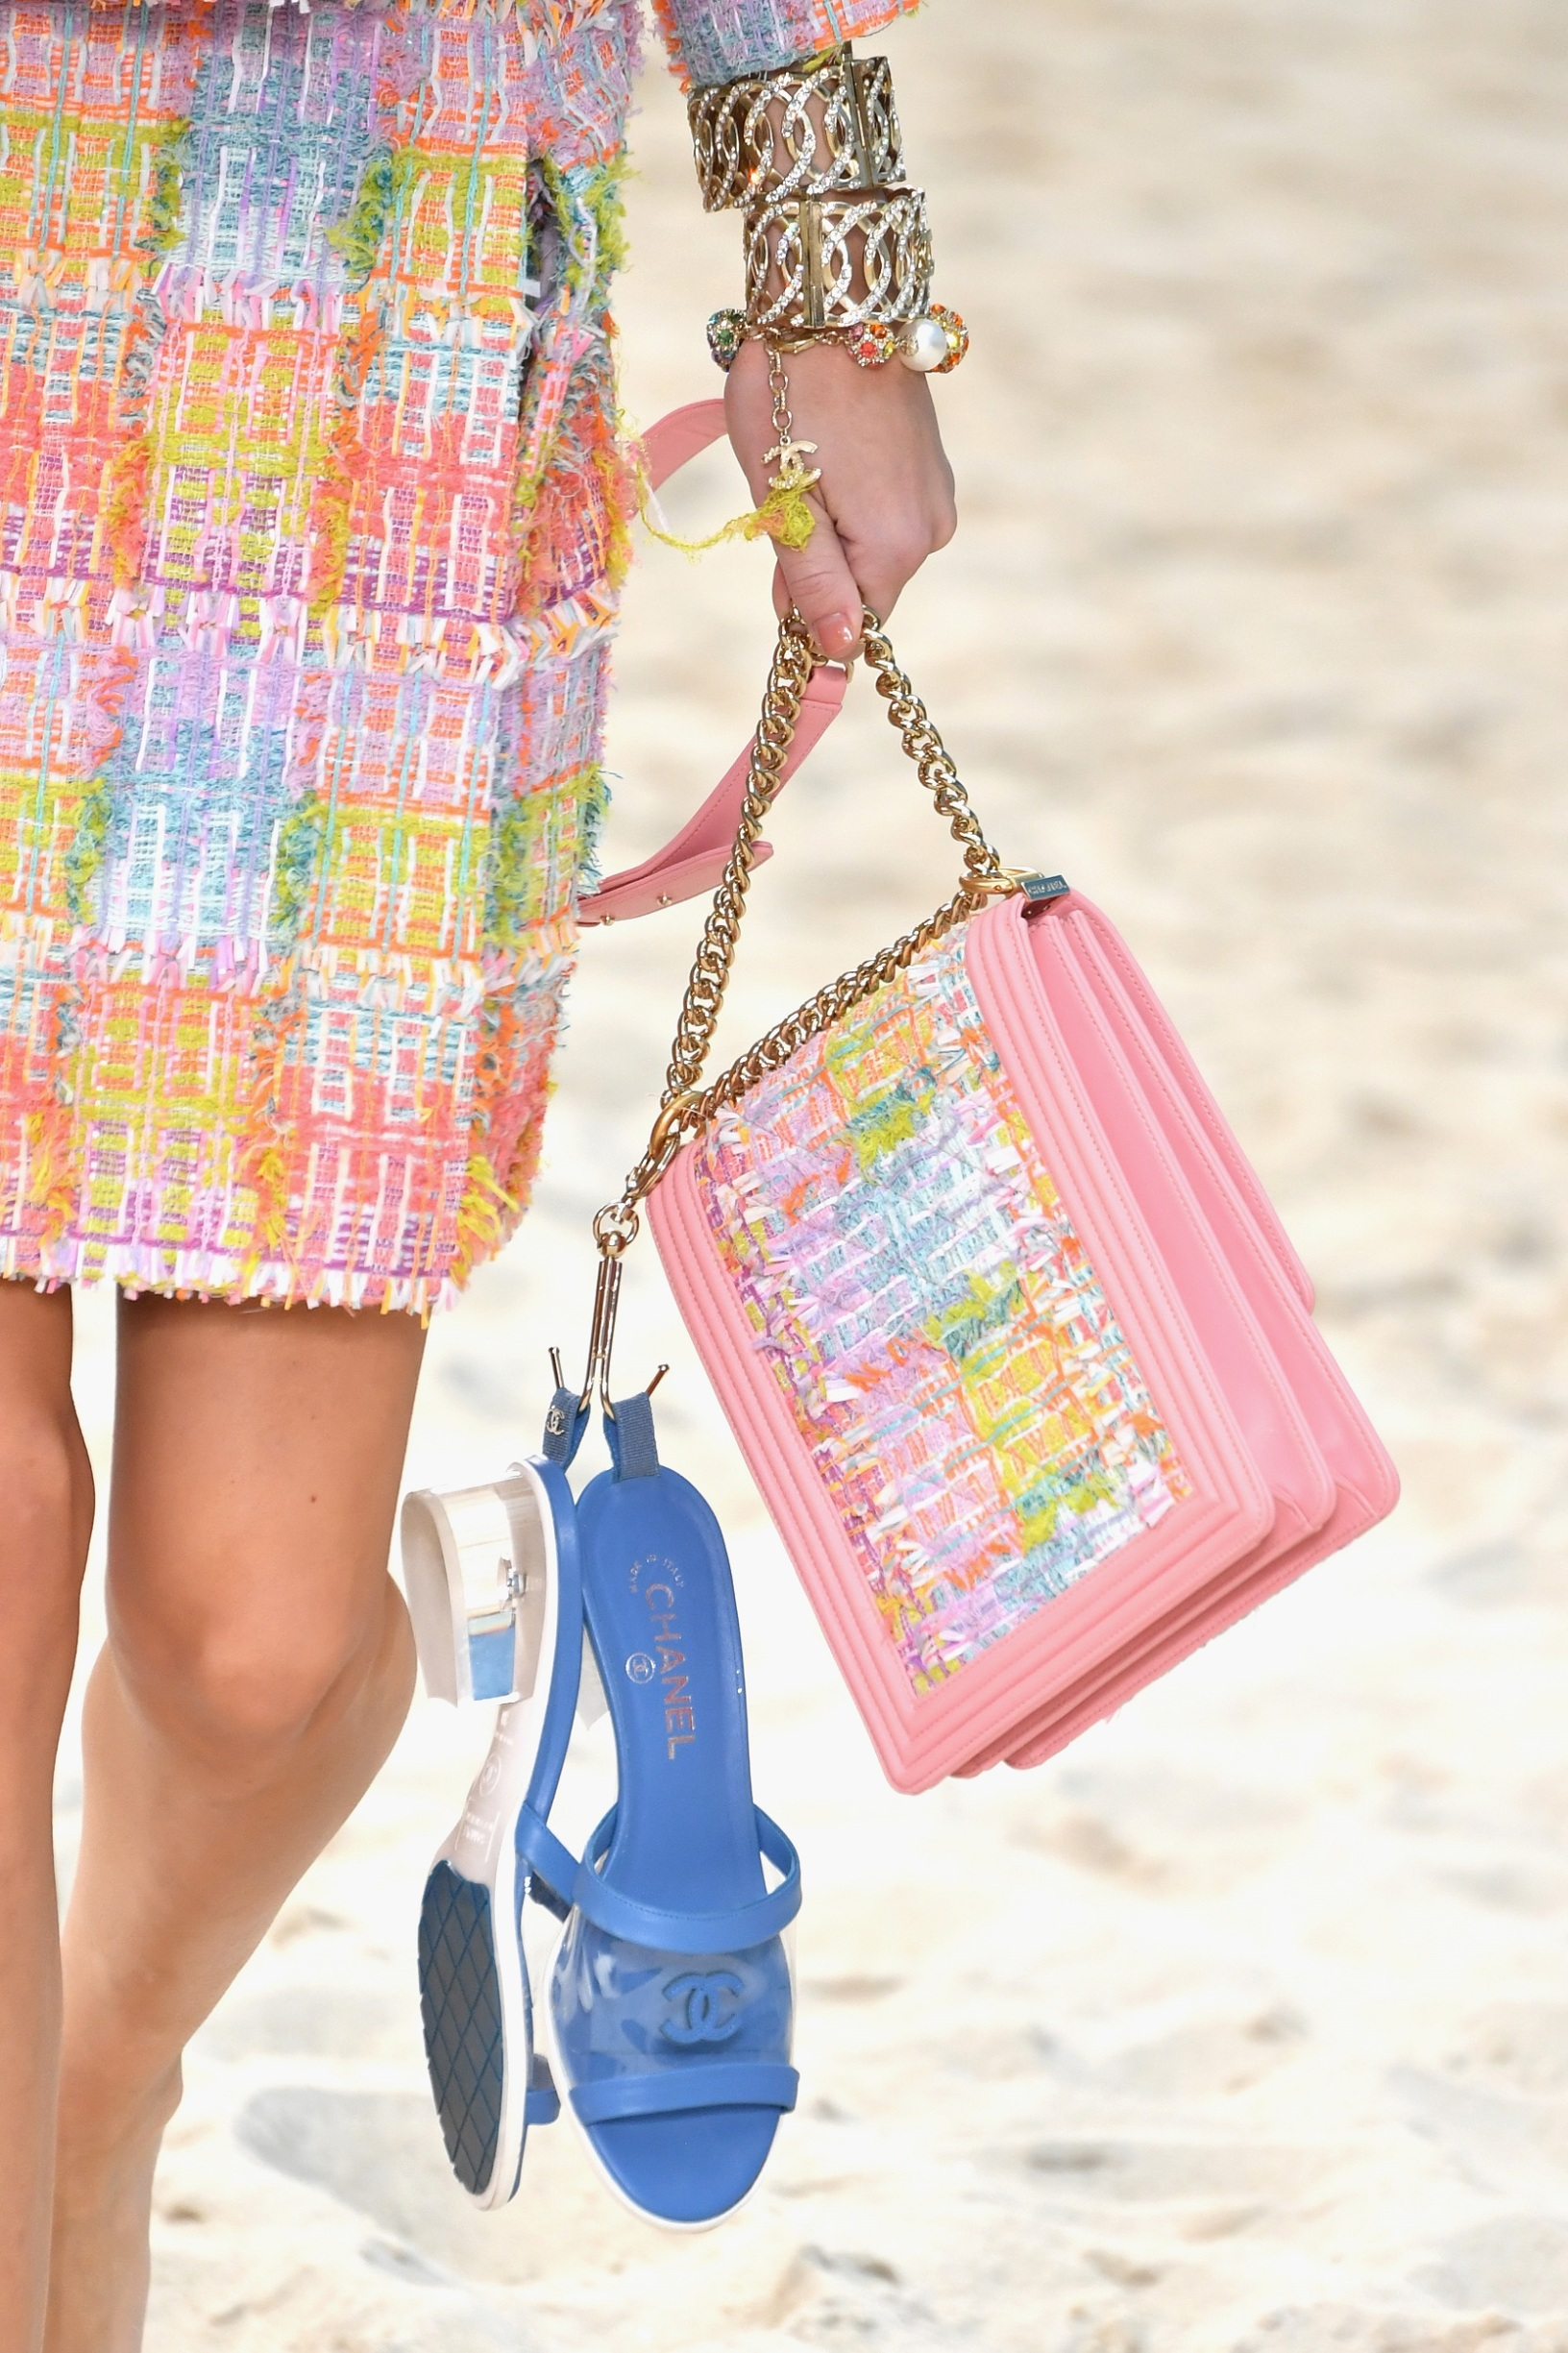 PARIS, FRANCE - OCTOBER 02:  A model,bag detail, walks the runway during the Chanel show as part of the Paris Fashion Week Womenswear Spring/Summer 2019 on October 2, 2018 in Paris, France.  (Photo by Pascal Le Segretain/Getty Images)